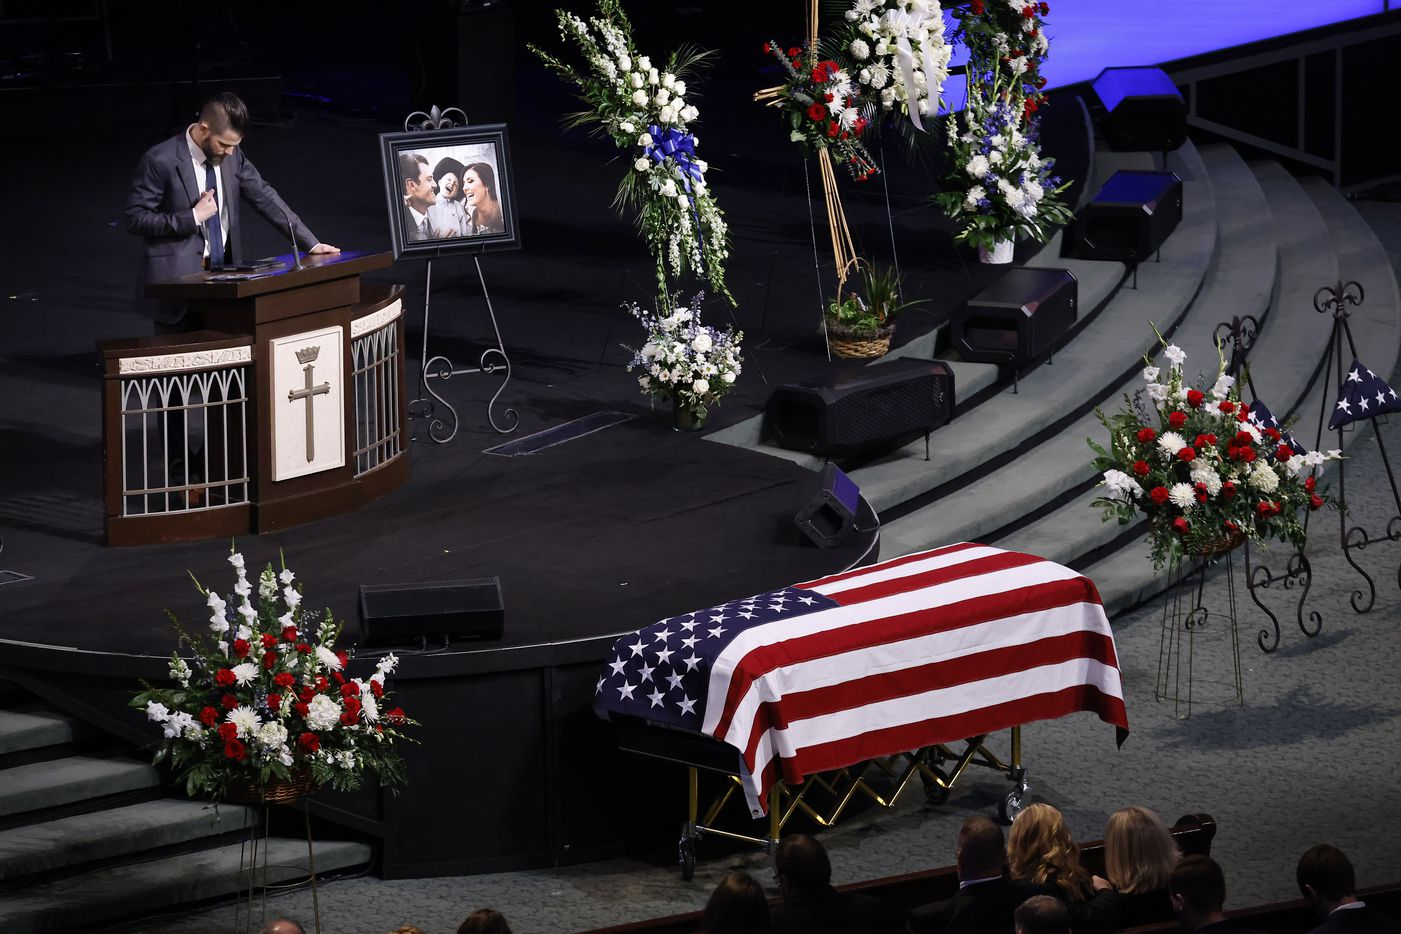 Pastor Corey Butler delivers words of comfort during a funeral service for his friend and Dallas Police officer Mitchell Penton at Prestonwood Baptist Church in Plano, Monday, February 22, 2021. Penton was killed Saturday, Feb. 13, 2021, in a crash involving a drunk driving suspect. (Tom Fox/The Dallas Morning News)